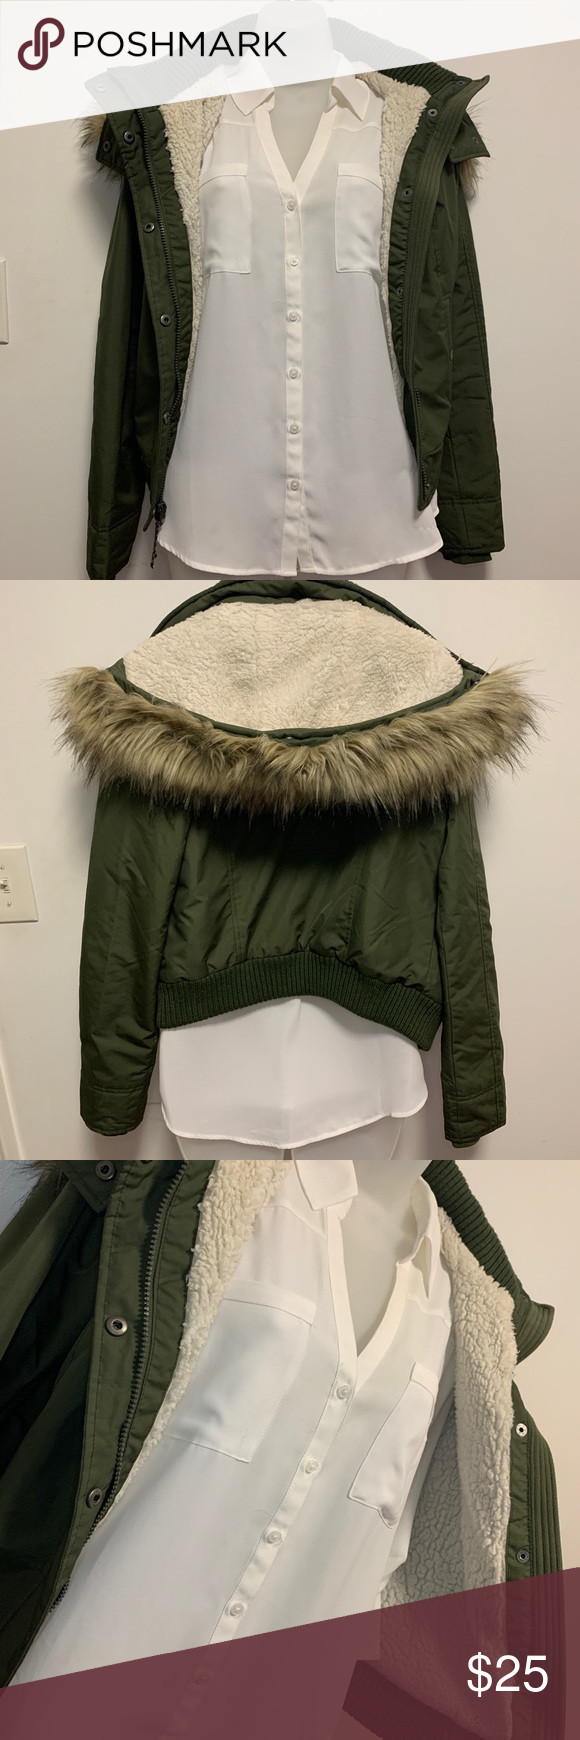 Hollister California All Weather Jacket All Weather Jackets Clothes Design Fashion [ 1740 x 580 Pixel ]